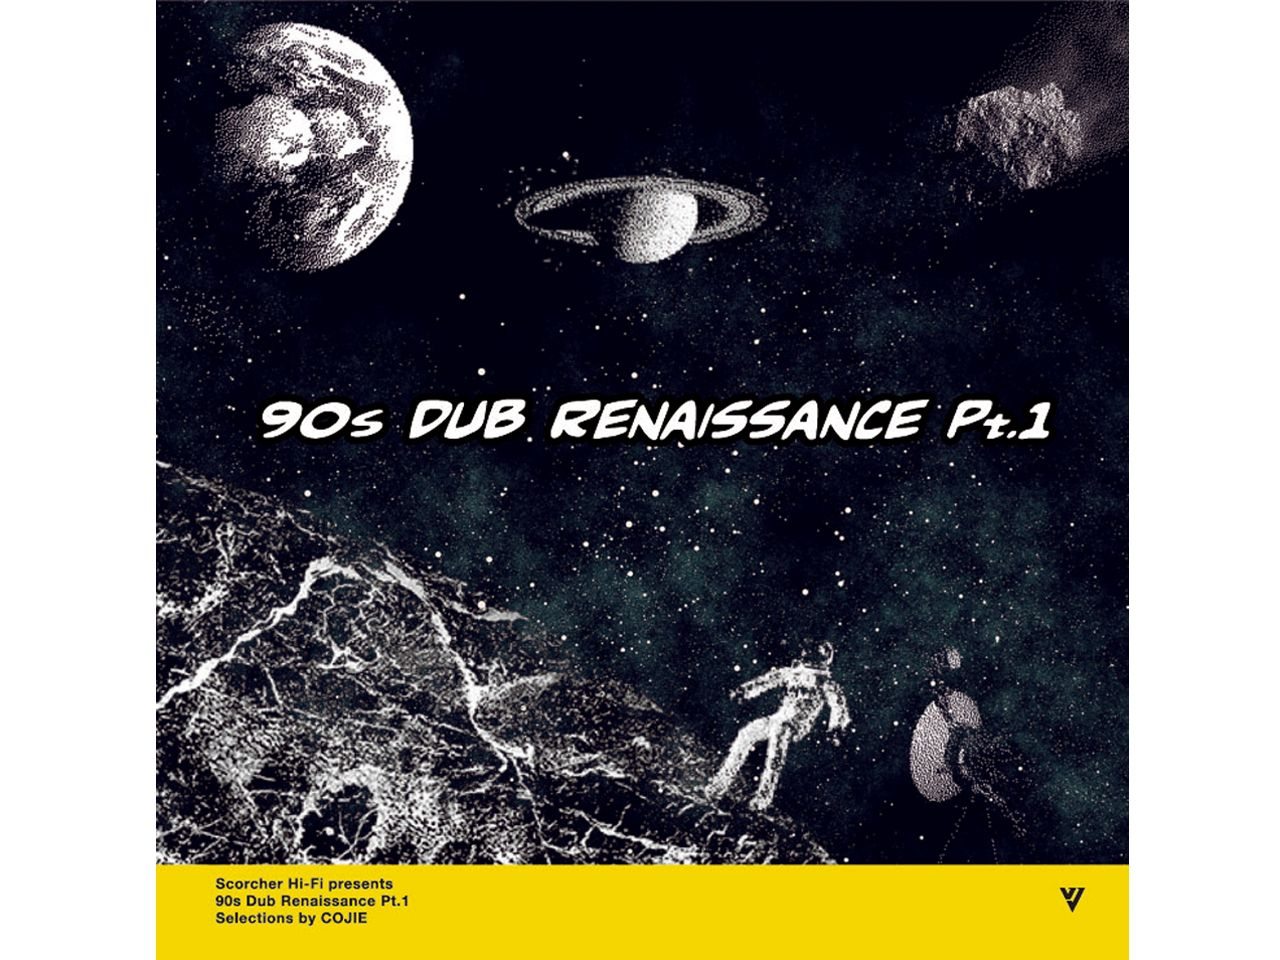 90s DUB RENAISSANCE Pt.1 - COJIE from MIGHTY CROWN